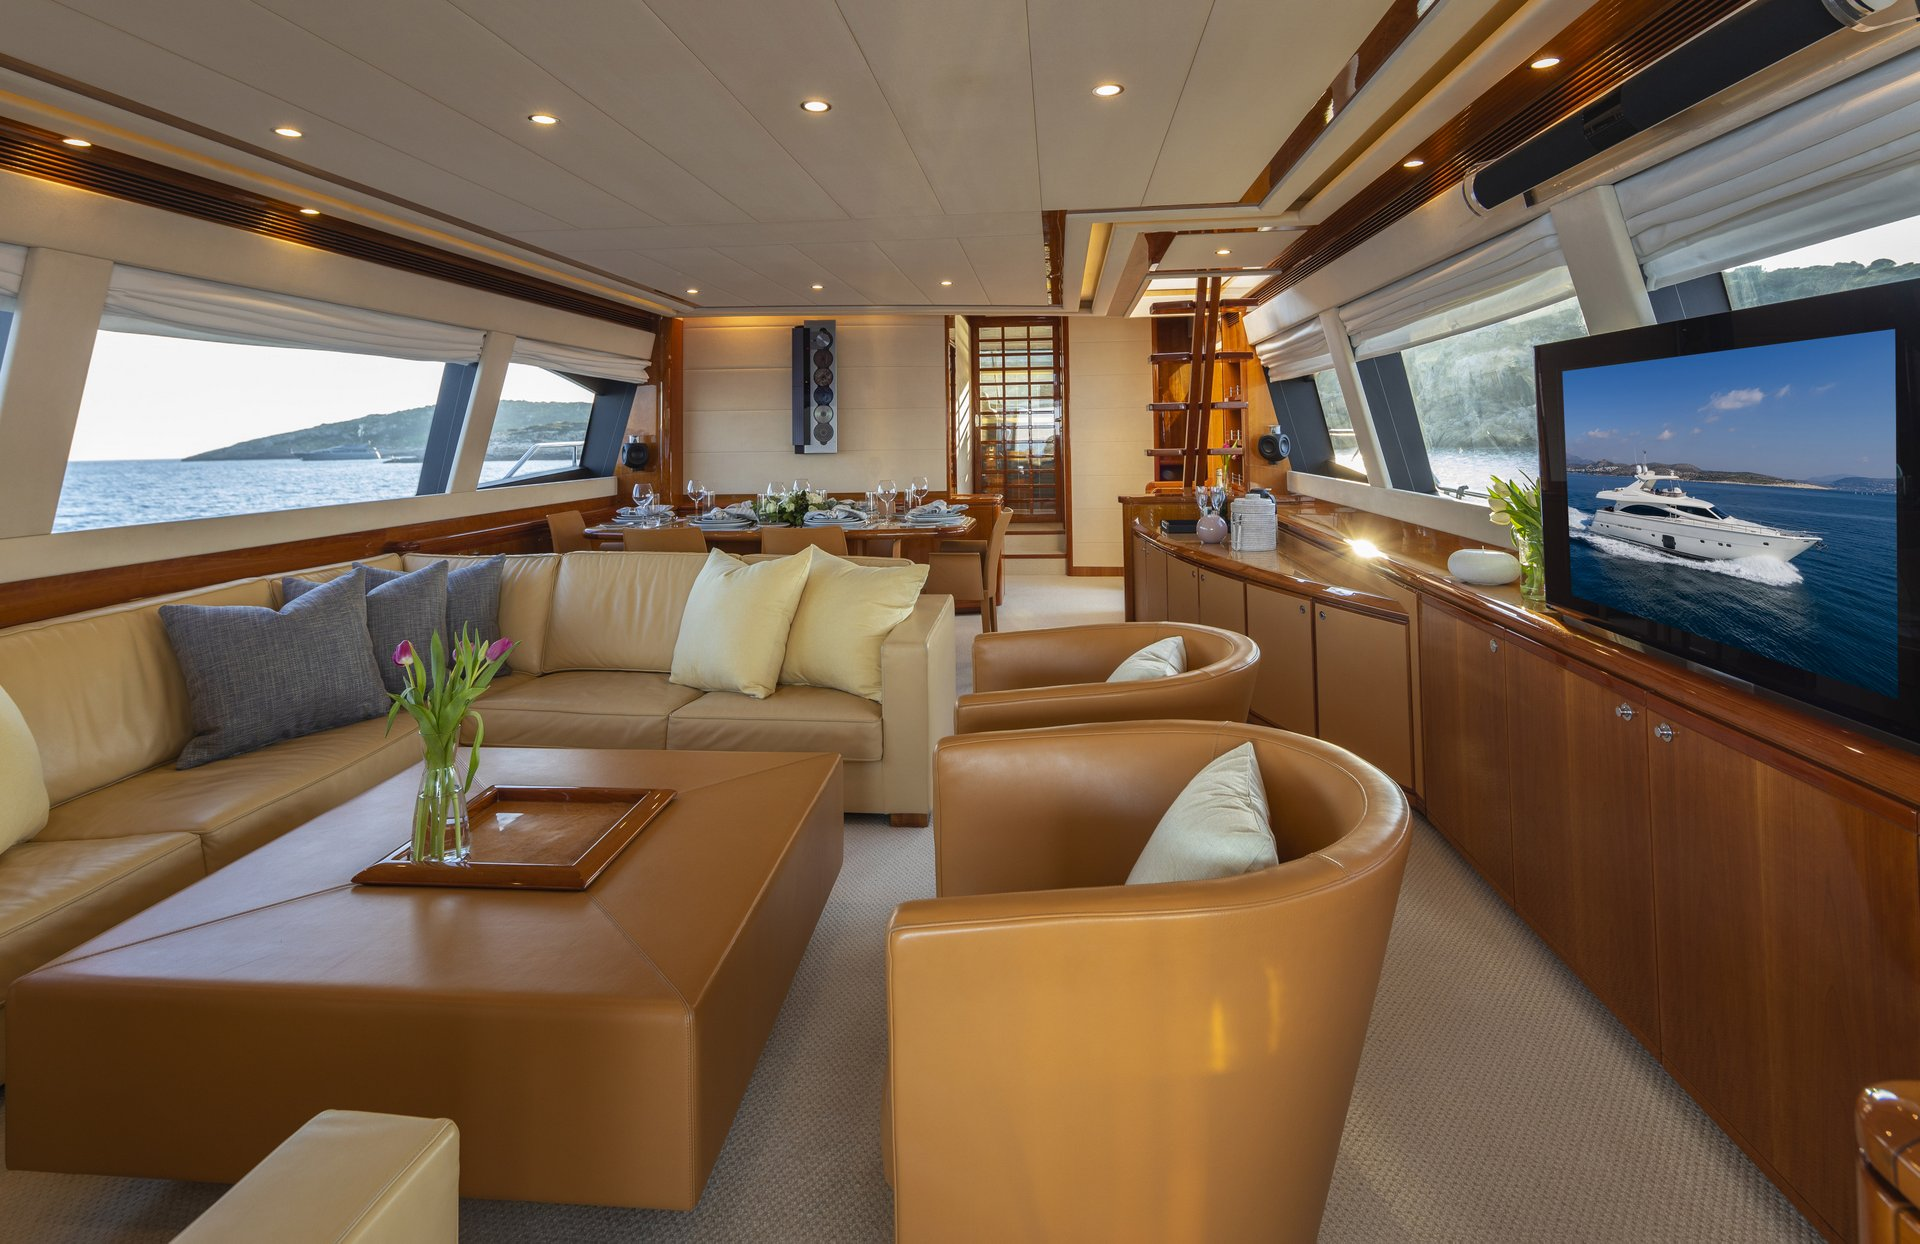 m/y astarte yacht for charter living room